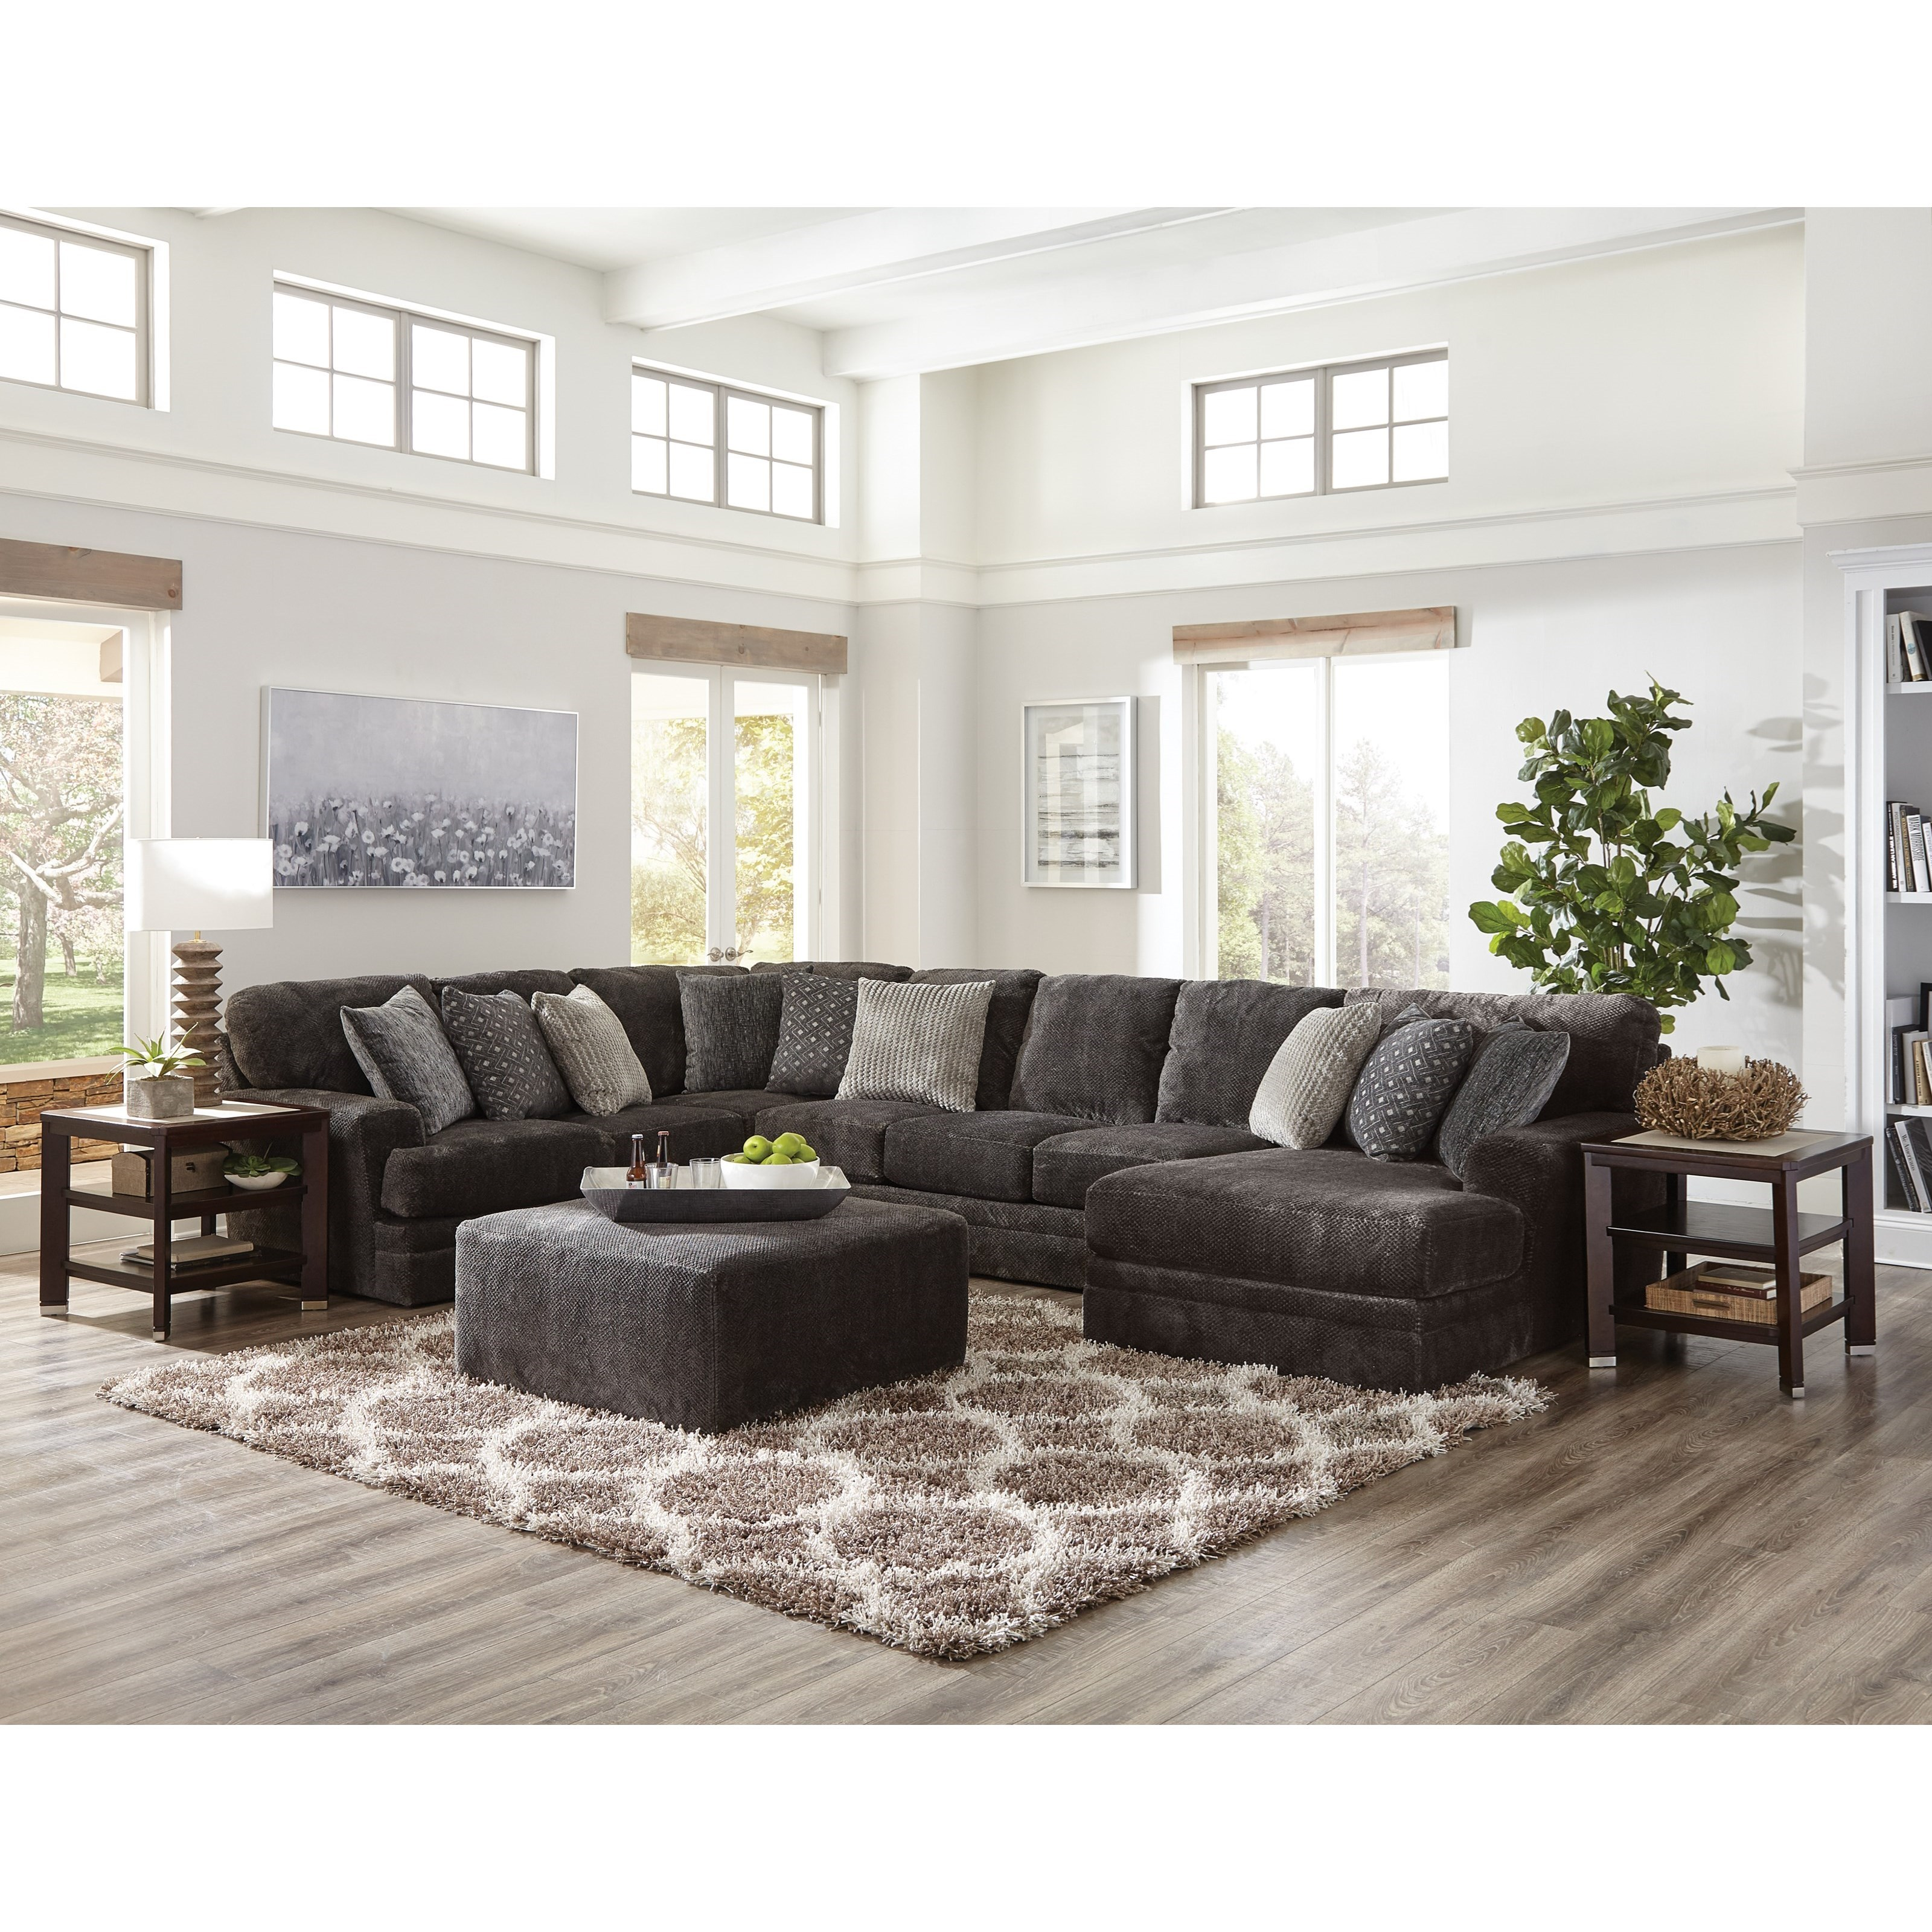 Mega Three Piece Sectional Sofa with Chaise by Comfy by Jackson at Ruby  Gordon Home